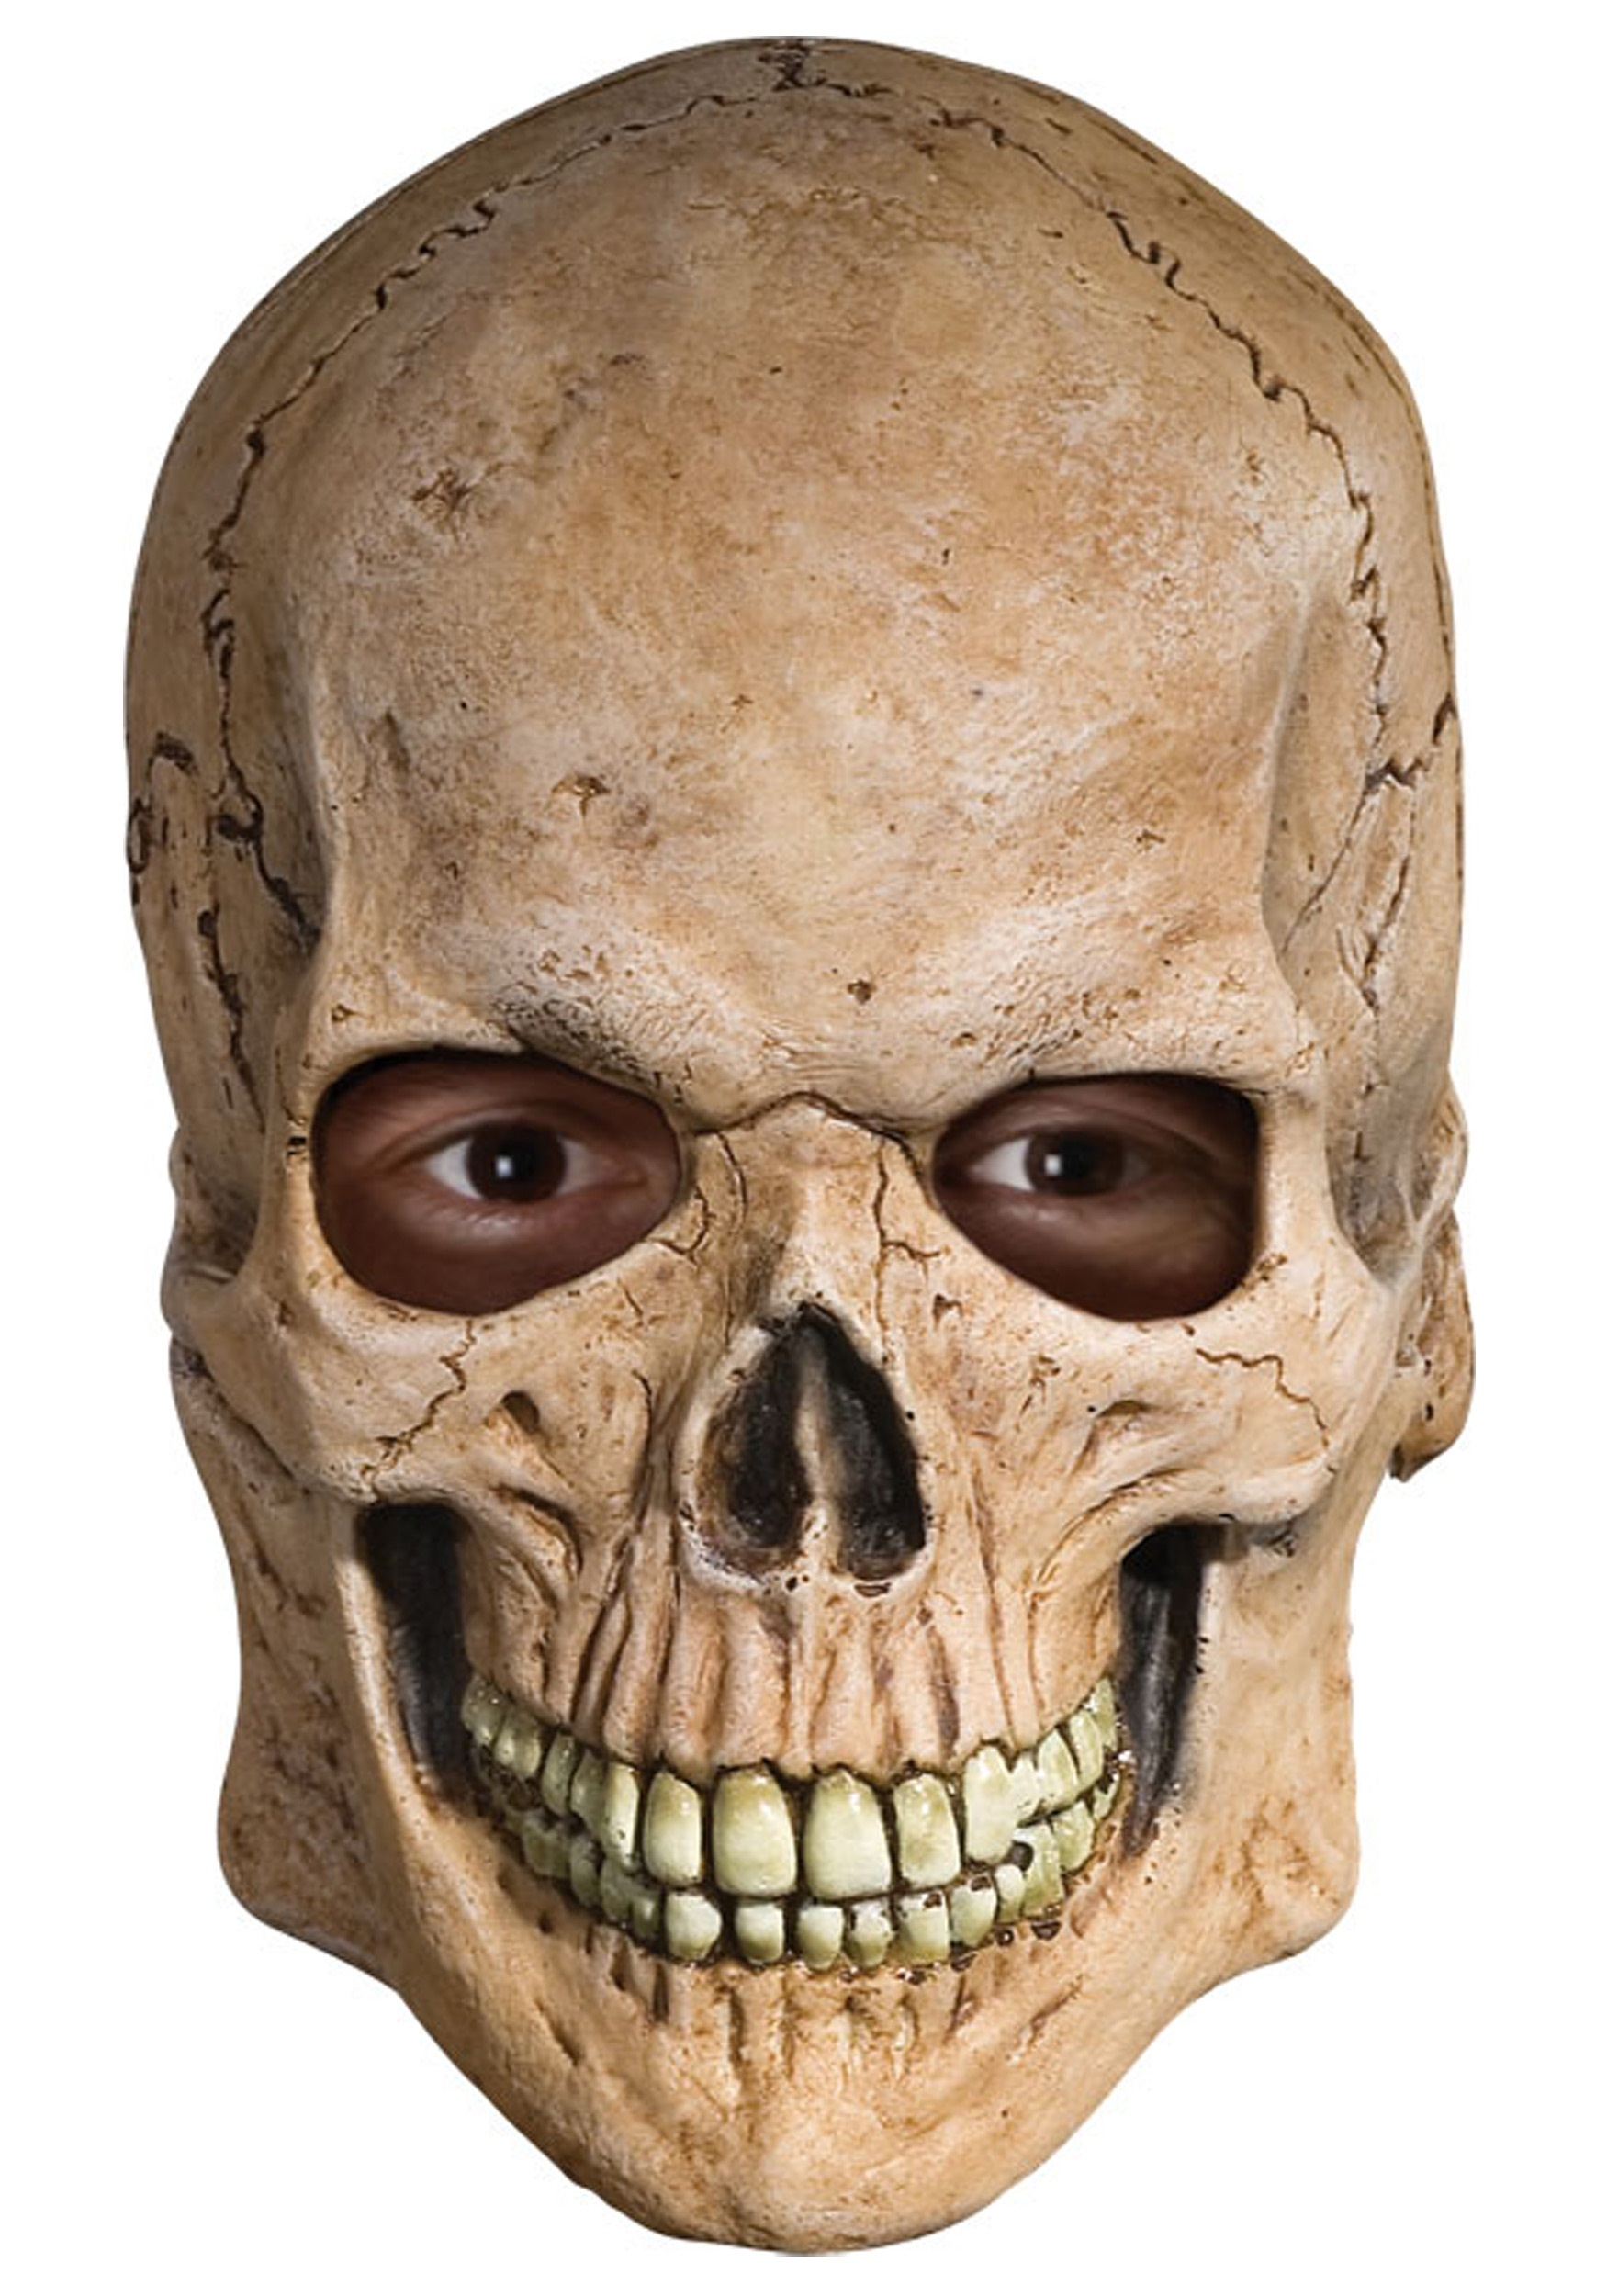 Latex Skull Mask - Scary Halloween Masks for Adults